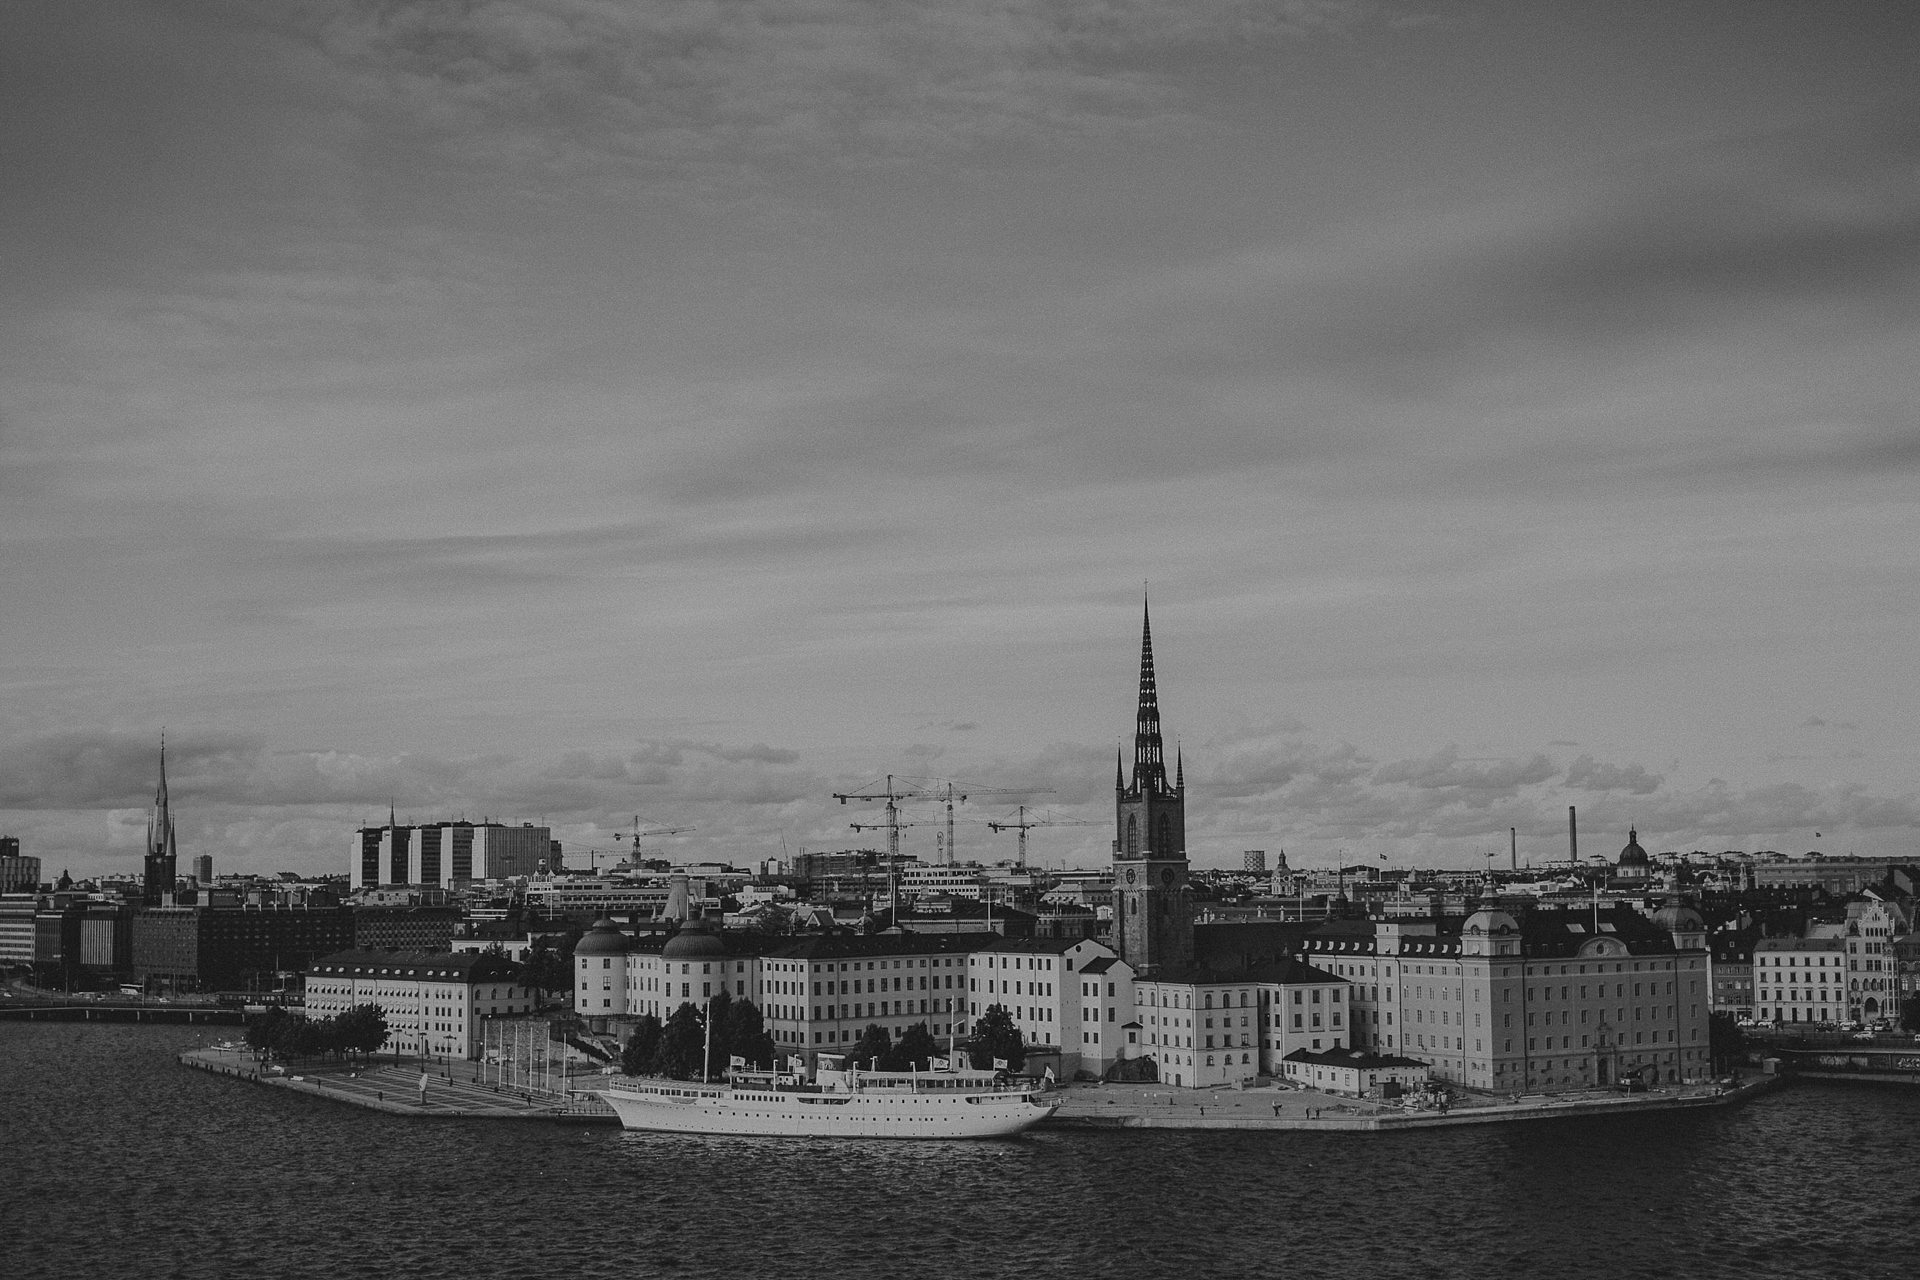 Stockholm Gamla stan city view